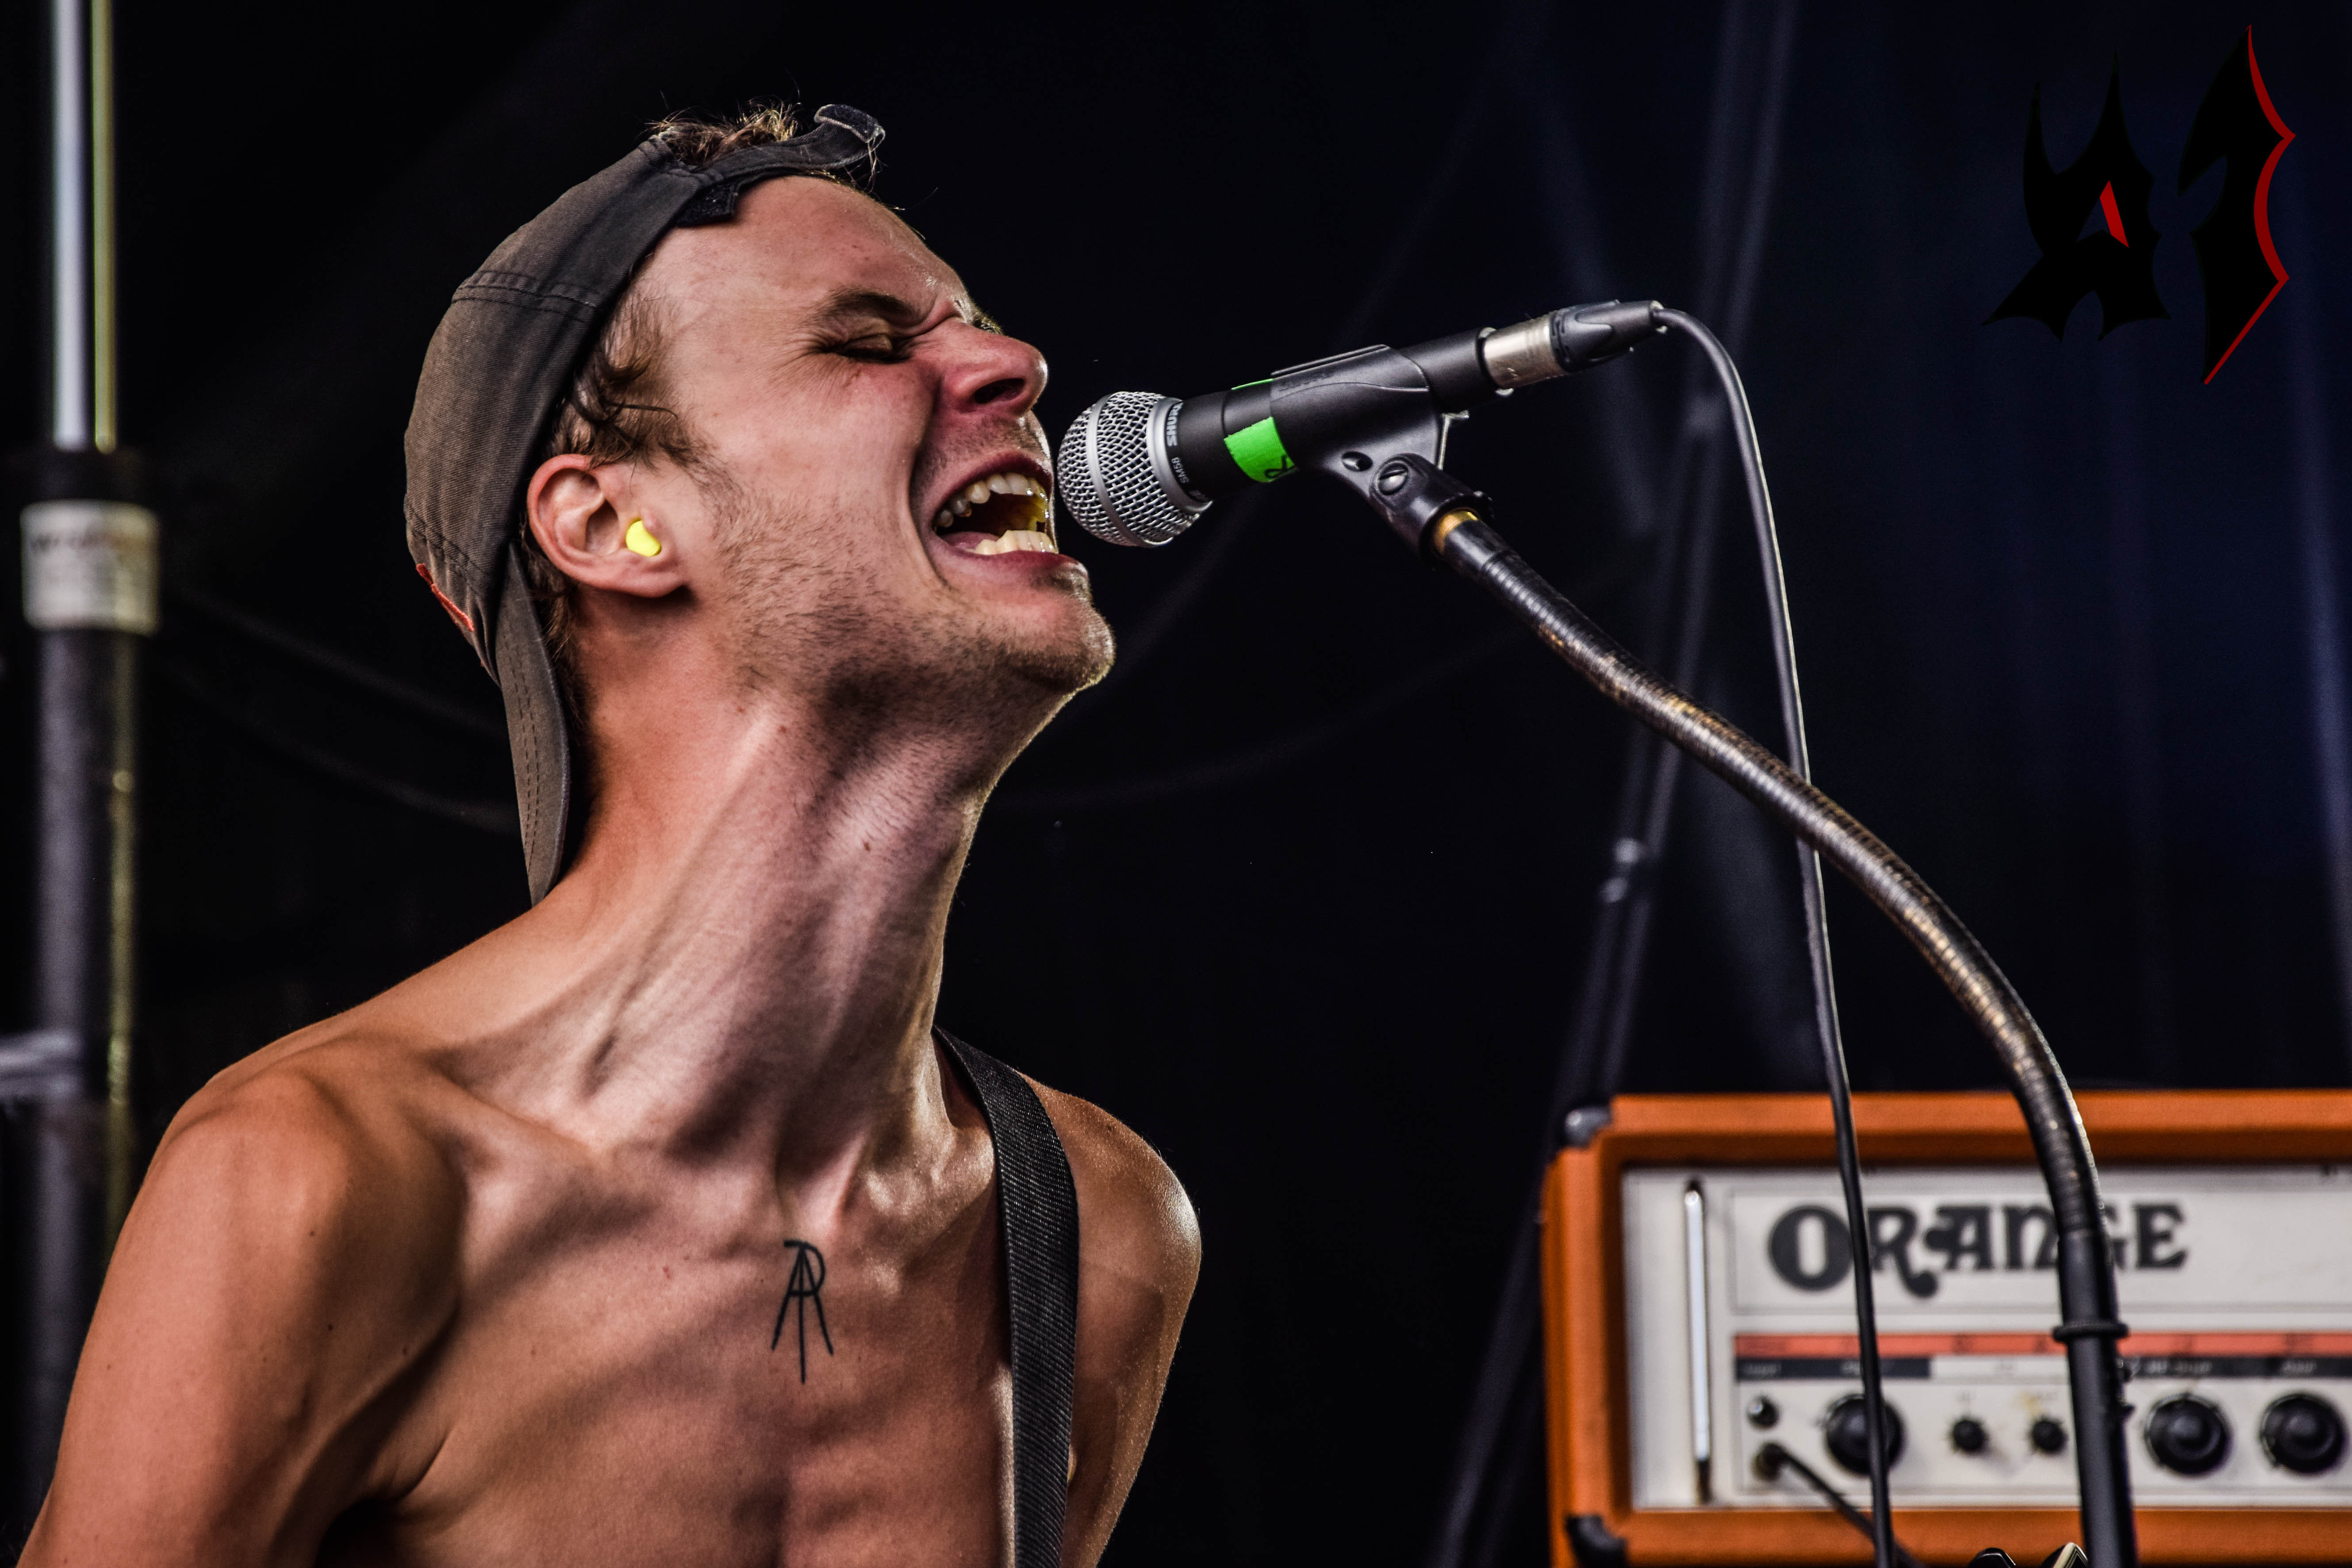 Donwload 2018 – Day 2 - Mantar 18